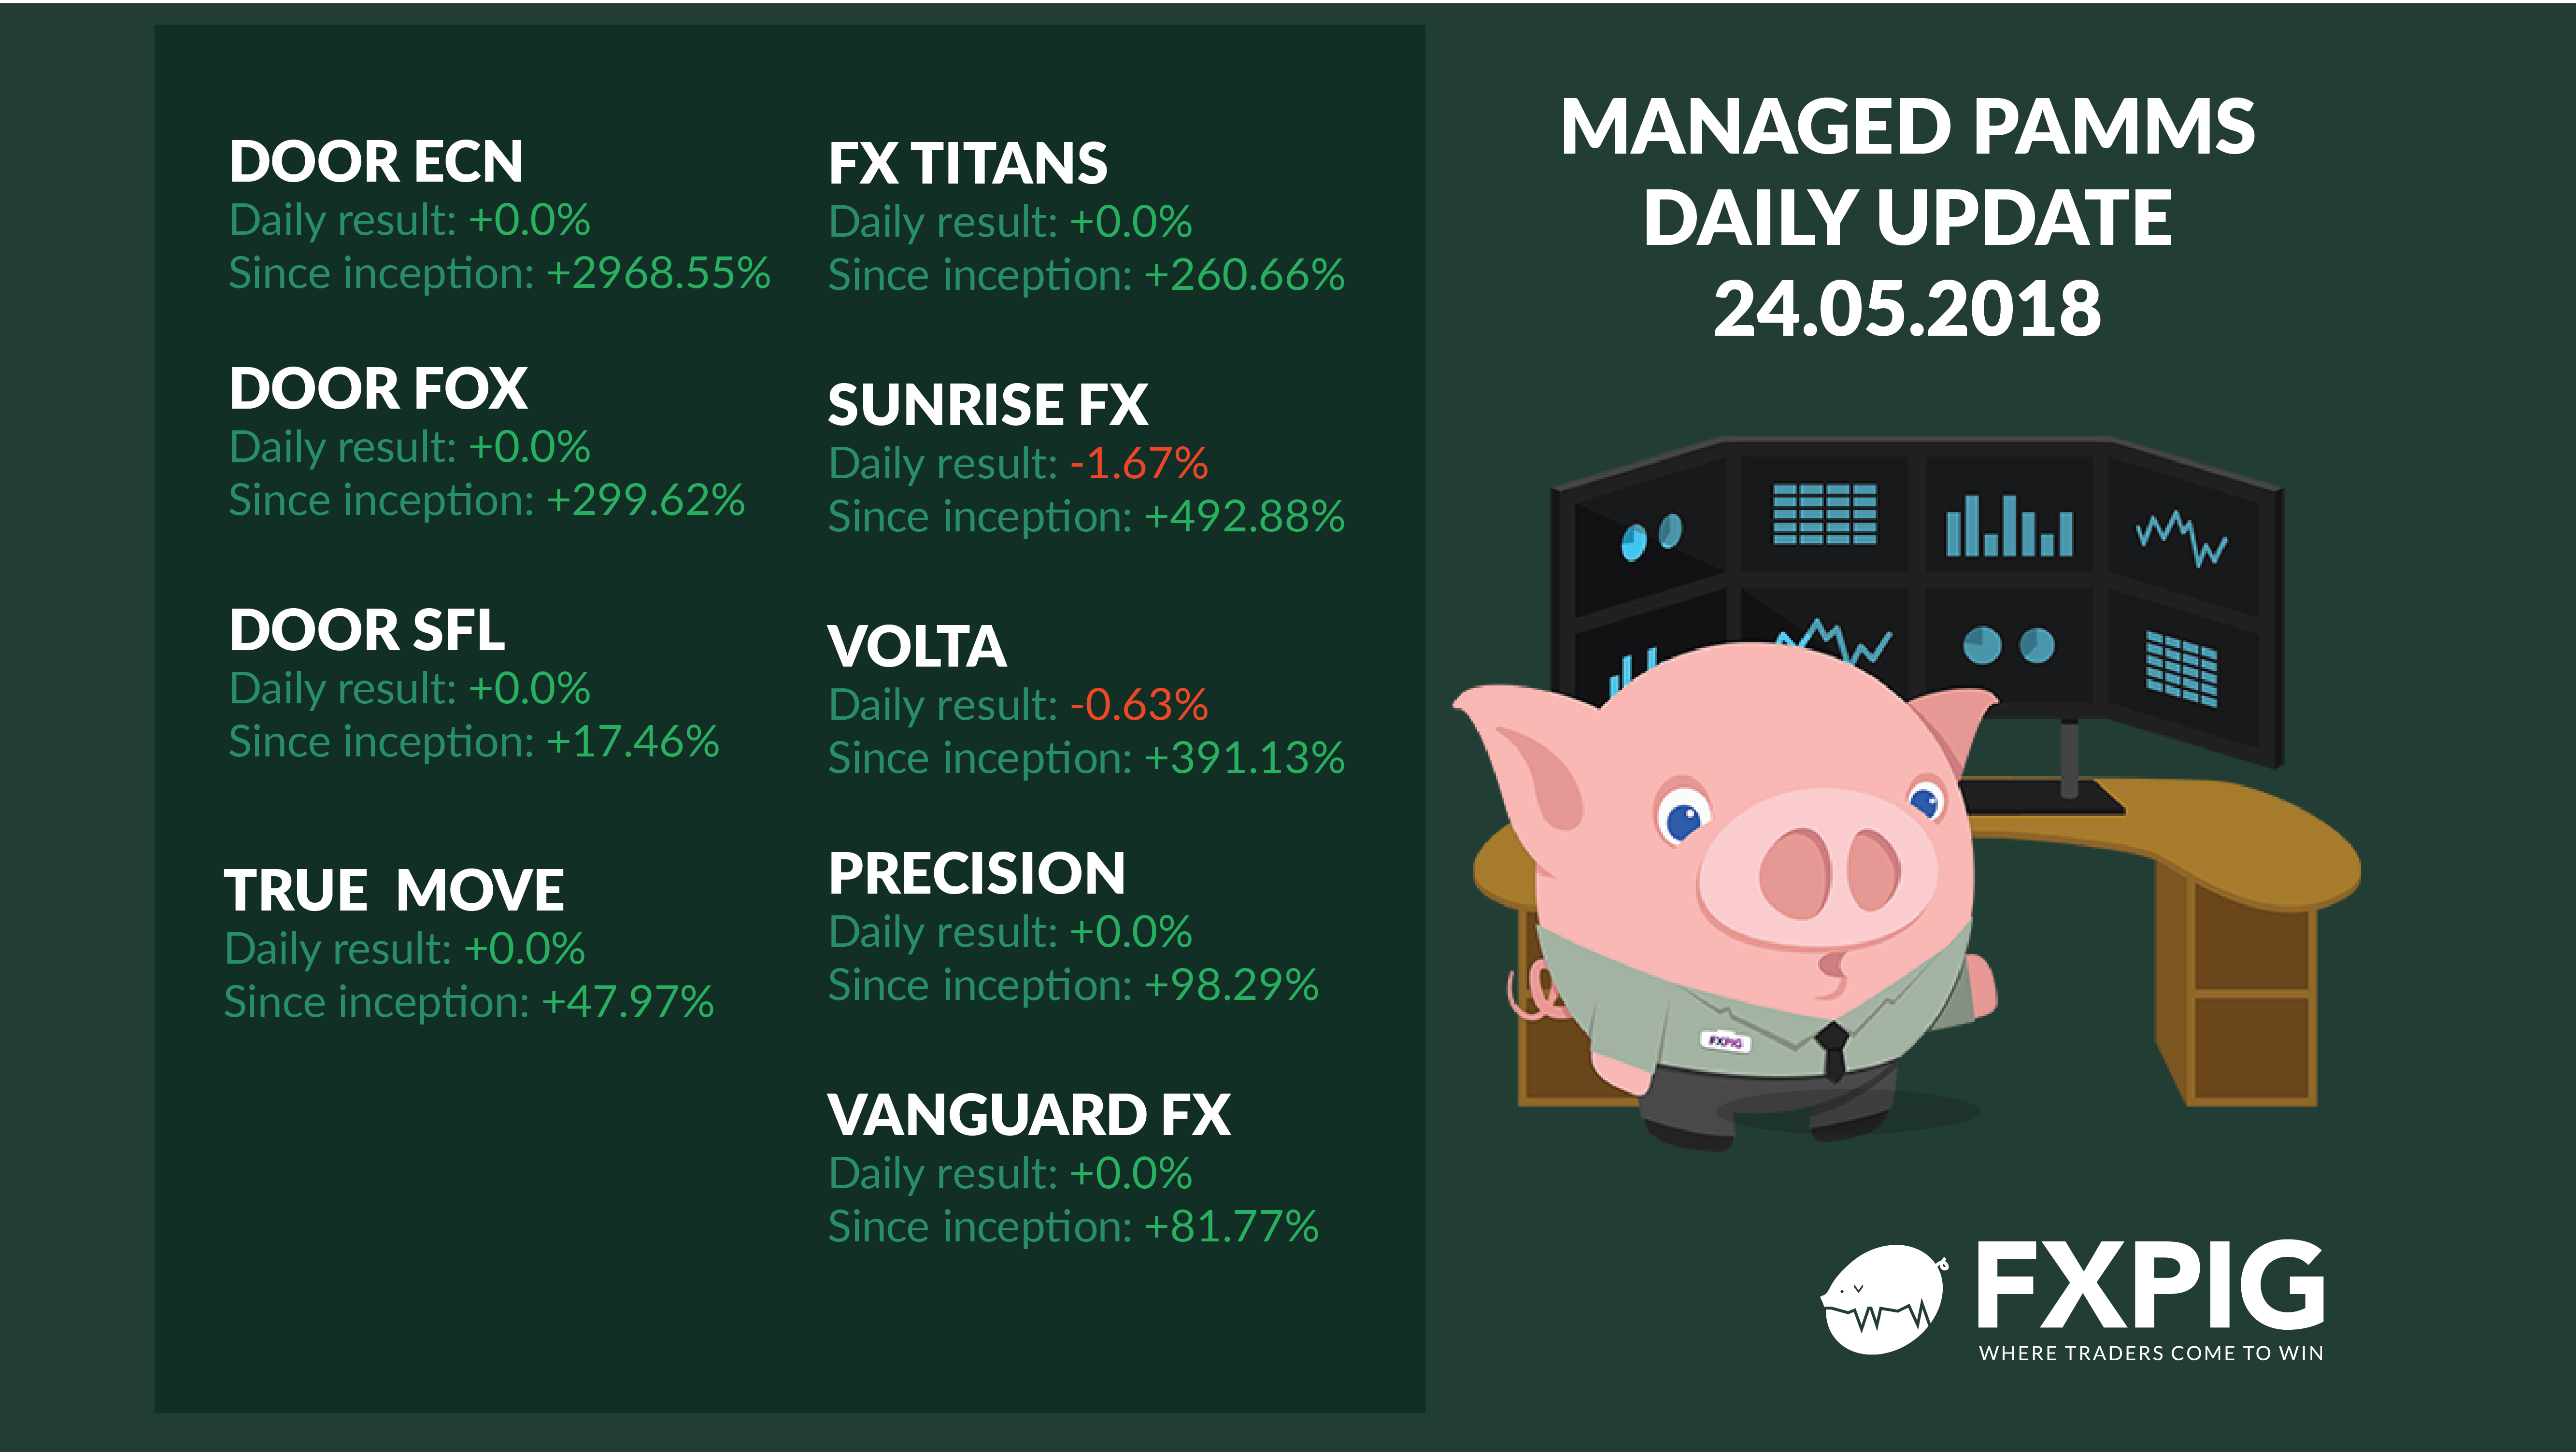 FOREX_managed-accounts-daily-results_FXPIG